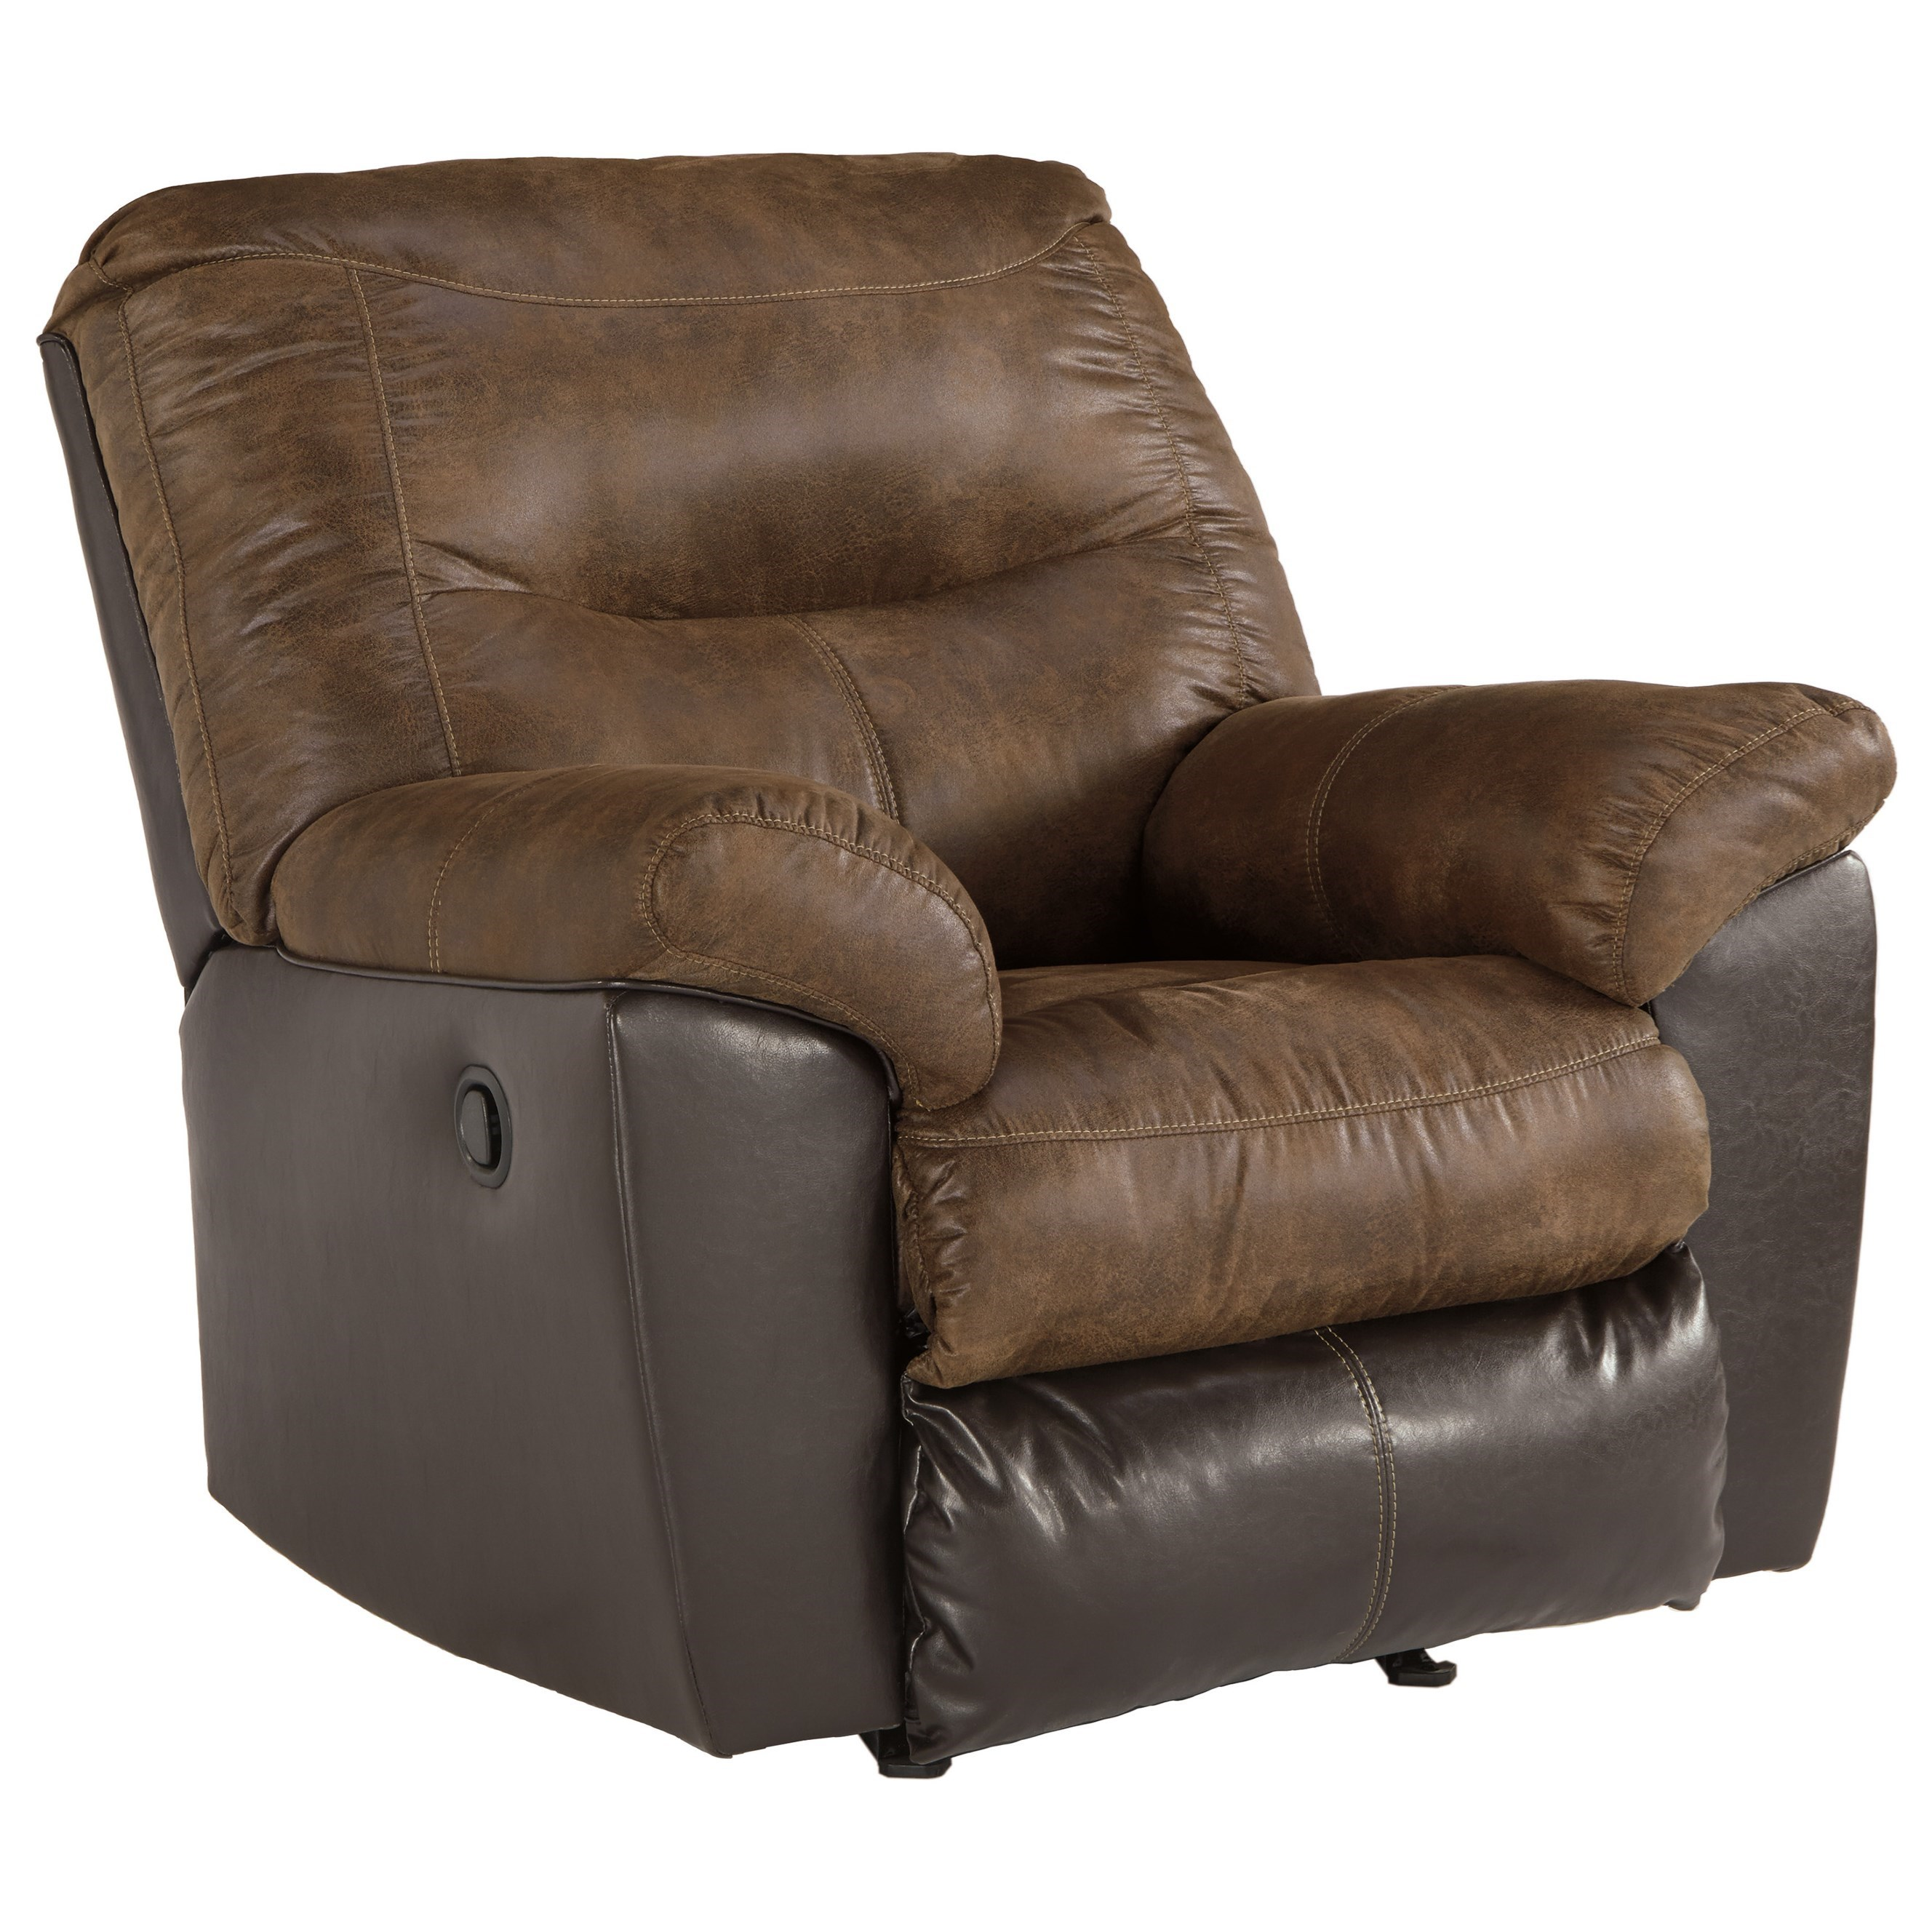 Signature Design by Ashley Leonberg Rocker Recliner - Item Number: 3790325